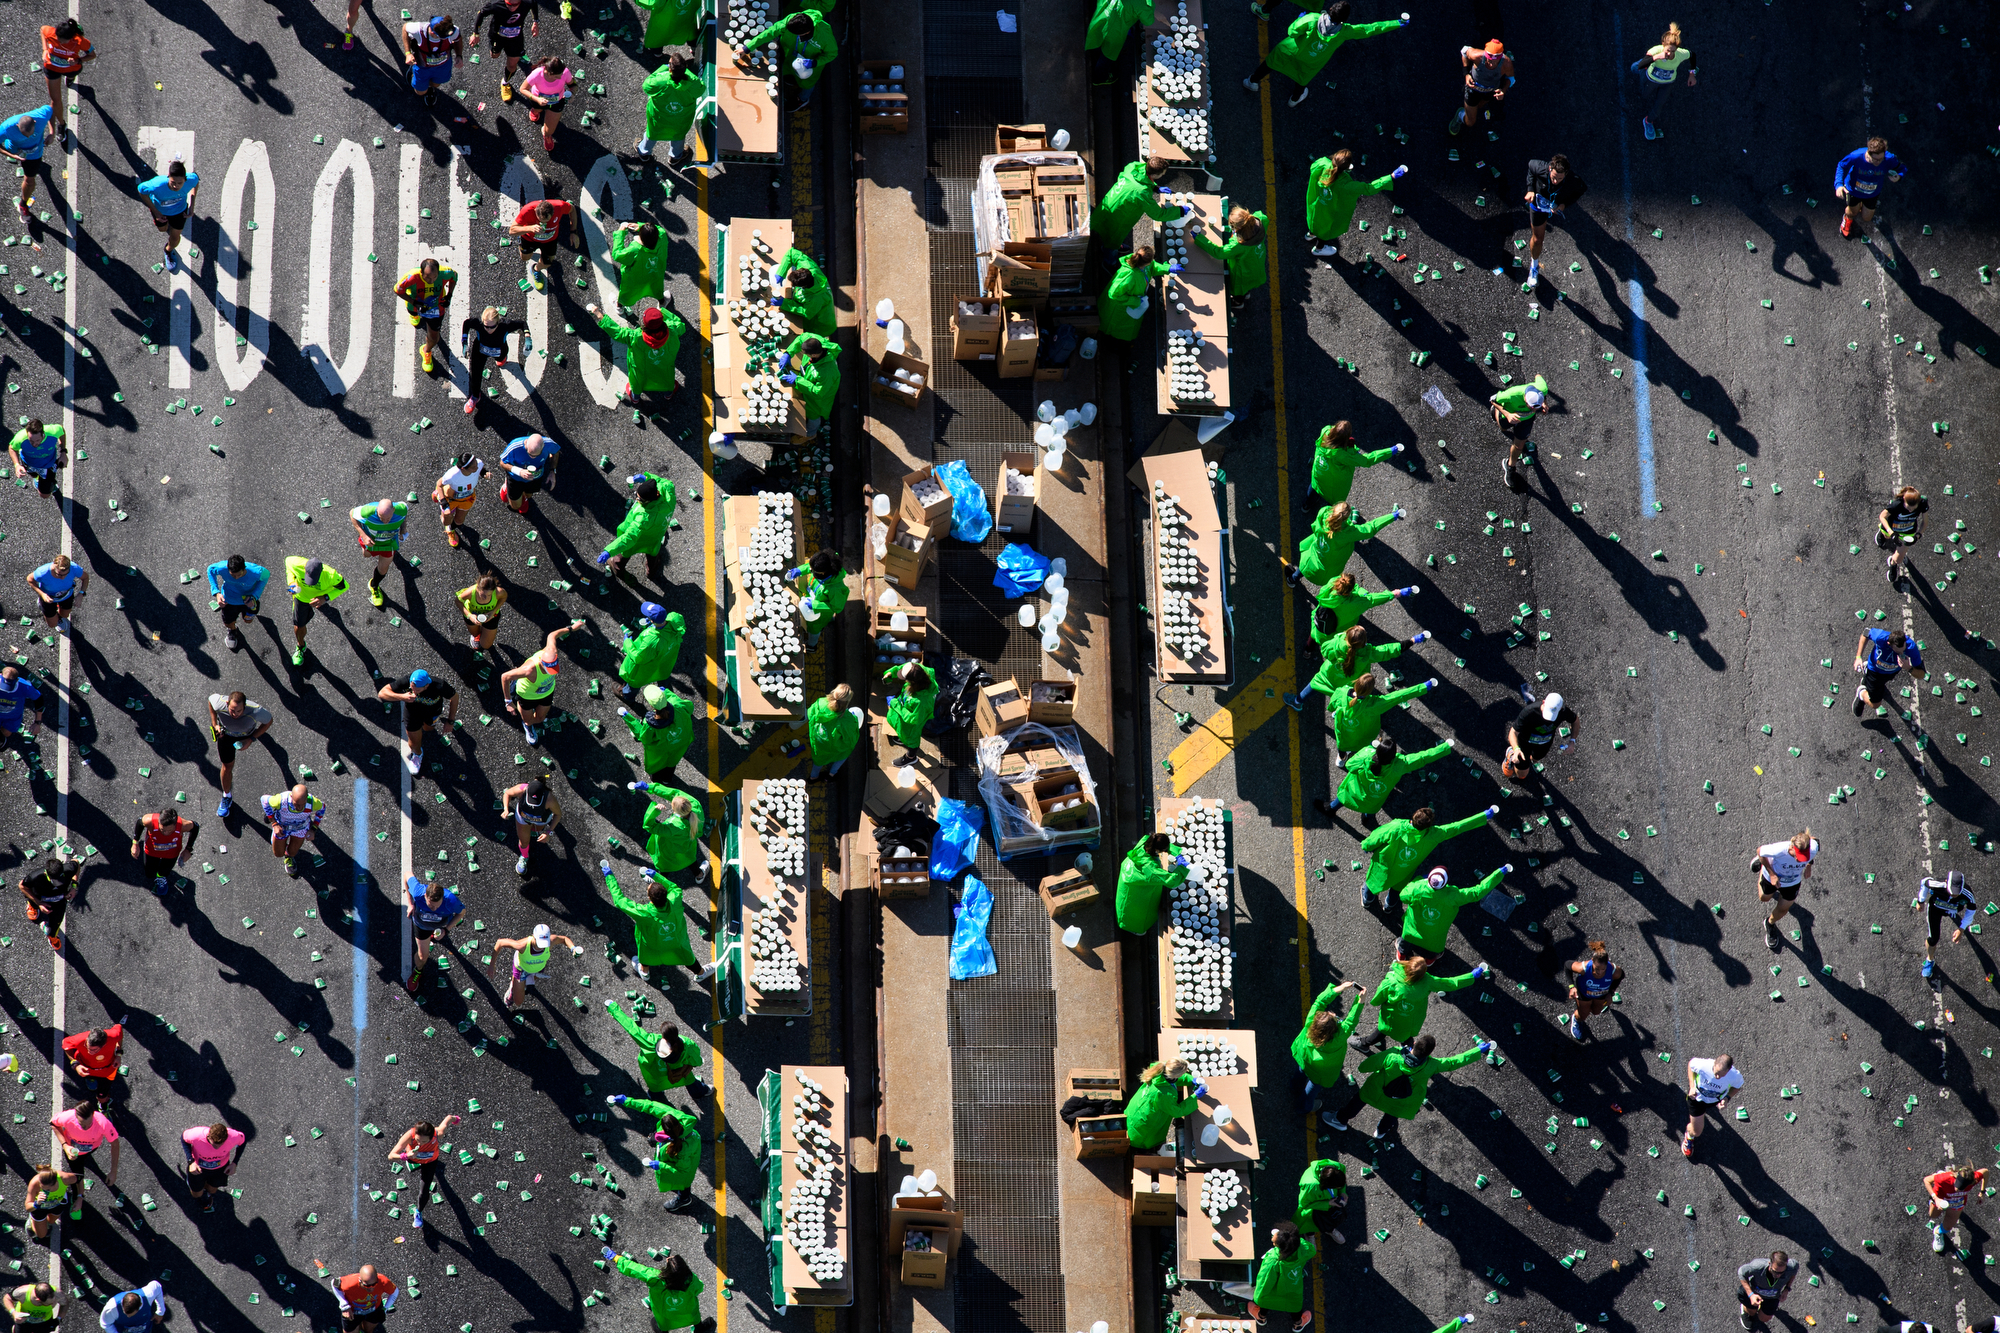 New York, NY - November 6, 2016: ****Aerial Coverage of the New York City Marathon for ESPN. **** (Joe McNally for ESPN)